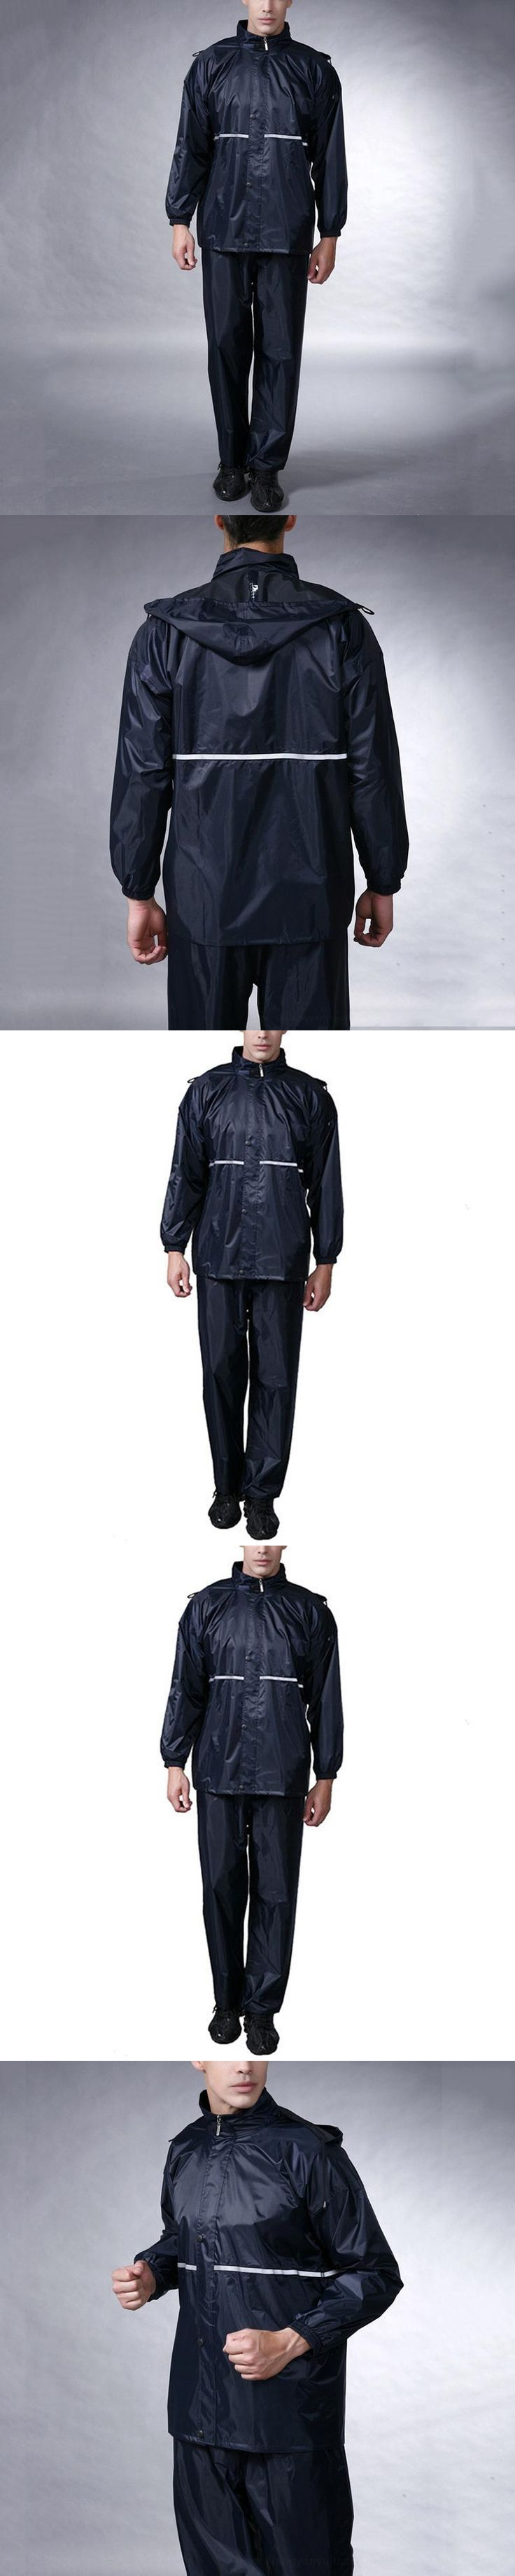 High Quality Unisex Raincoat Suit Electric Bicycle Motorcycle Rainwear Waterproof Rain Jacket Trousers Size XL-4XL